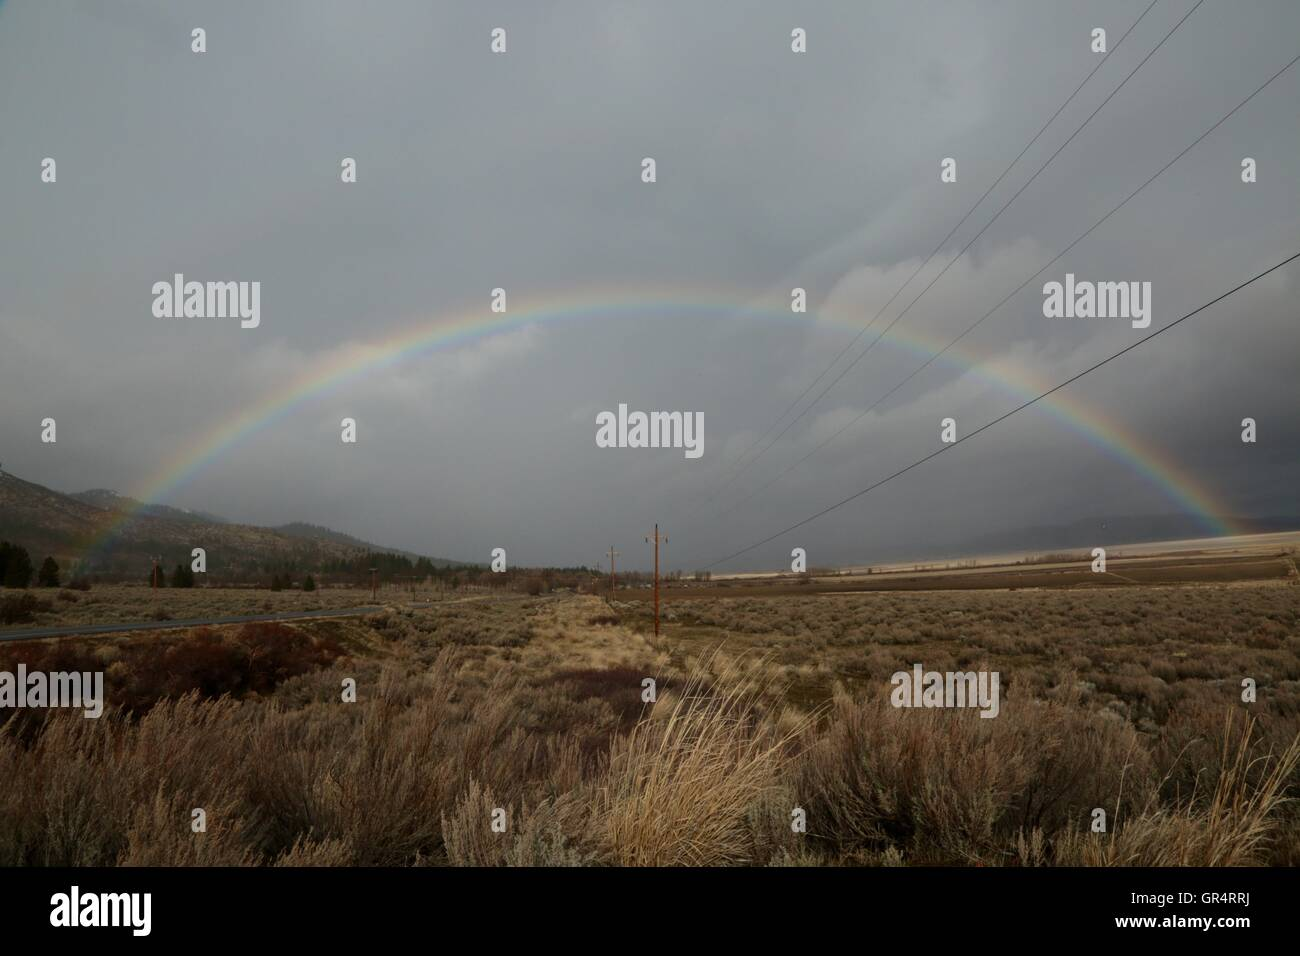 A beautiful rainbow stretching out over the cloud-soaked desert brush. - Stock Image